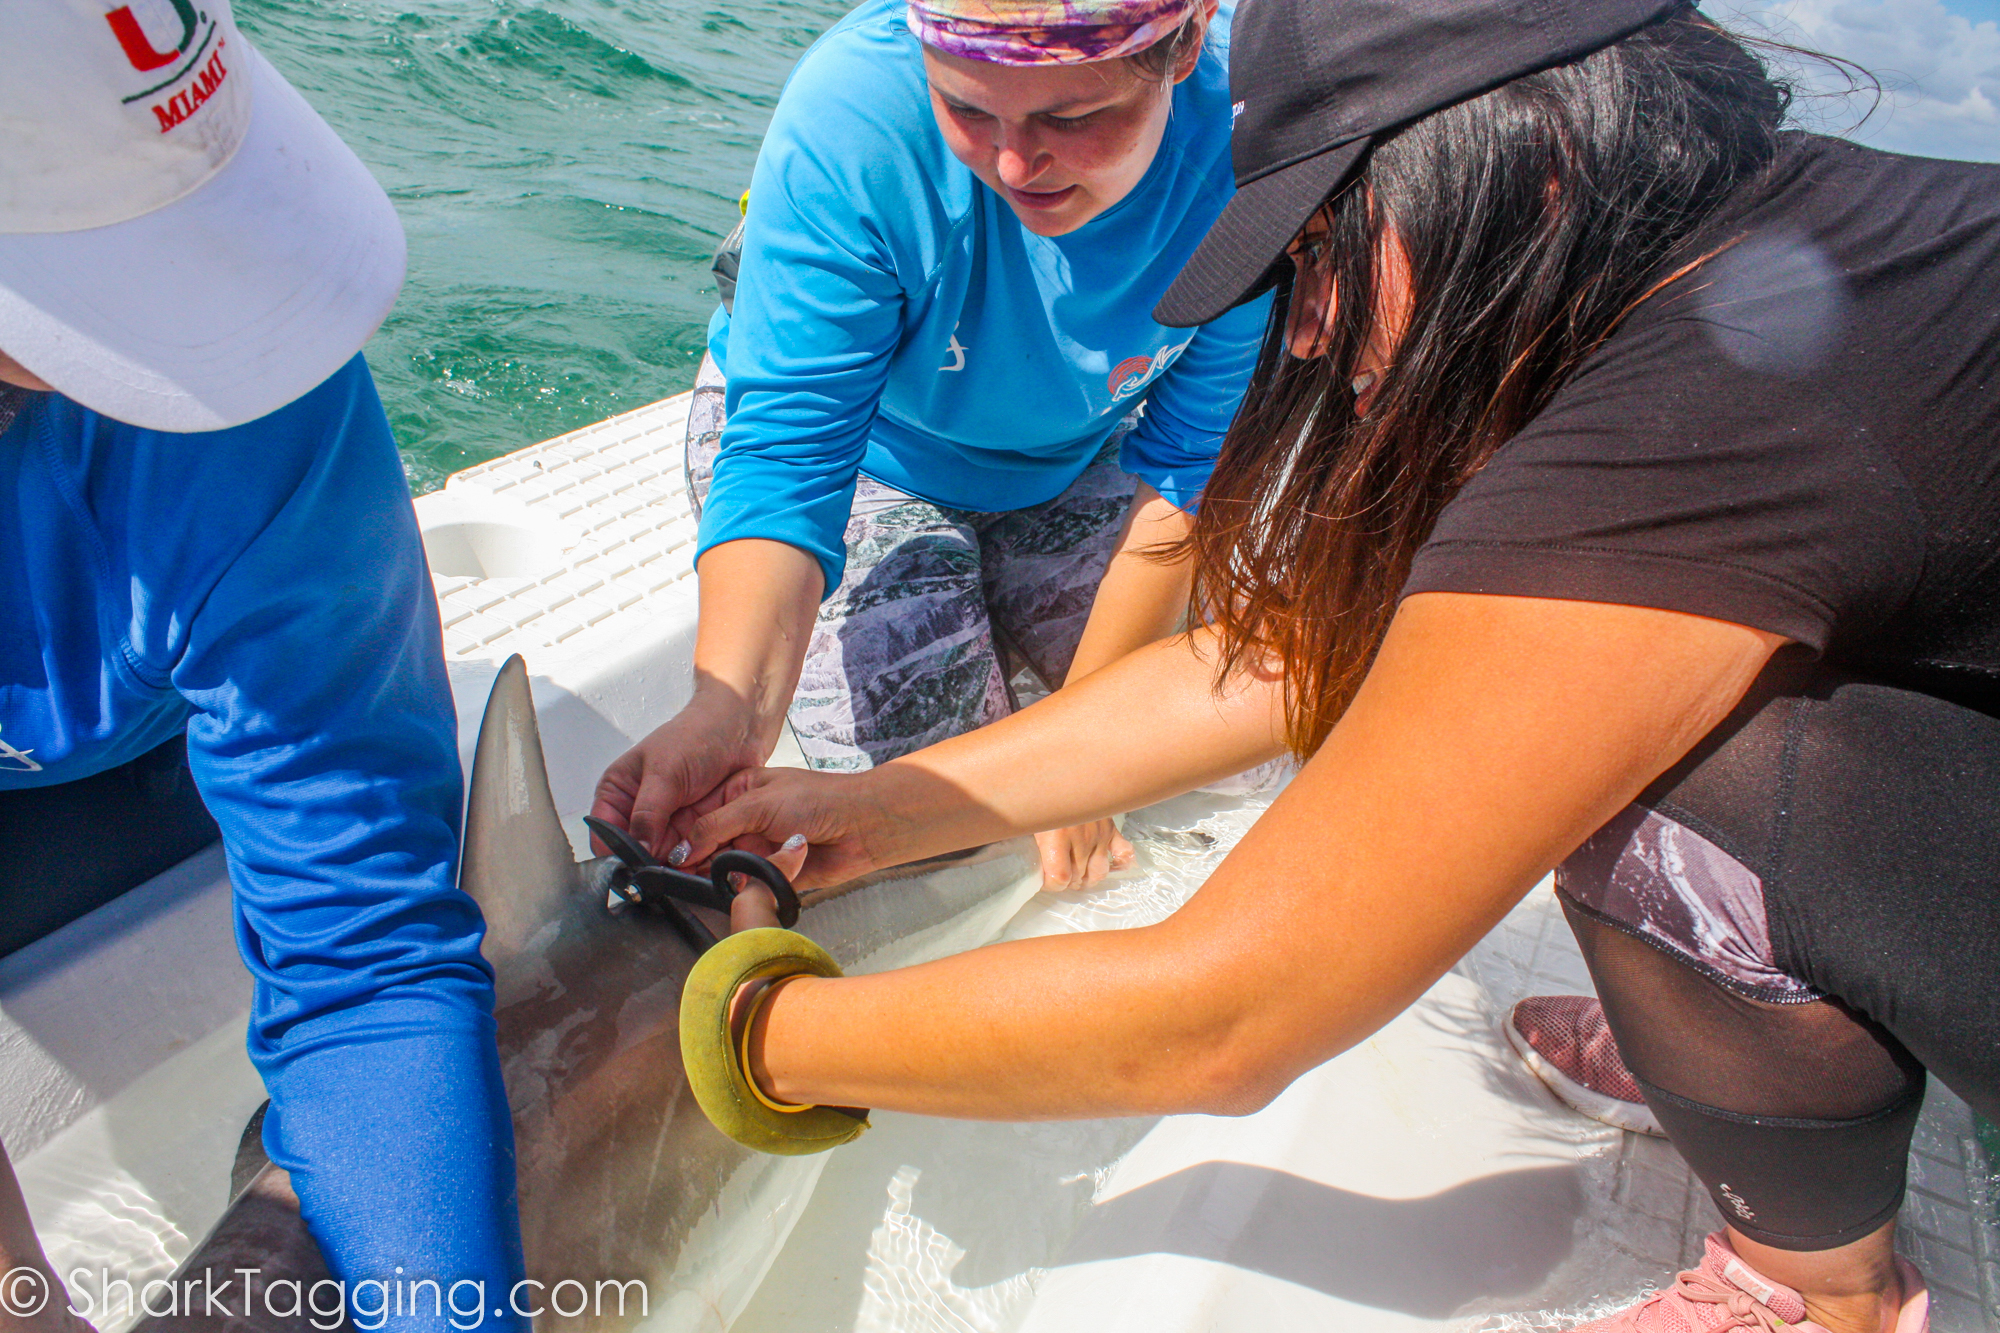 Doer Estrella clipping a shark for research| Photo Credit: @sharktagging.com